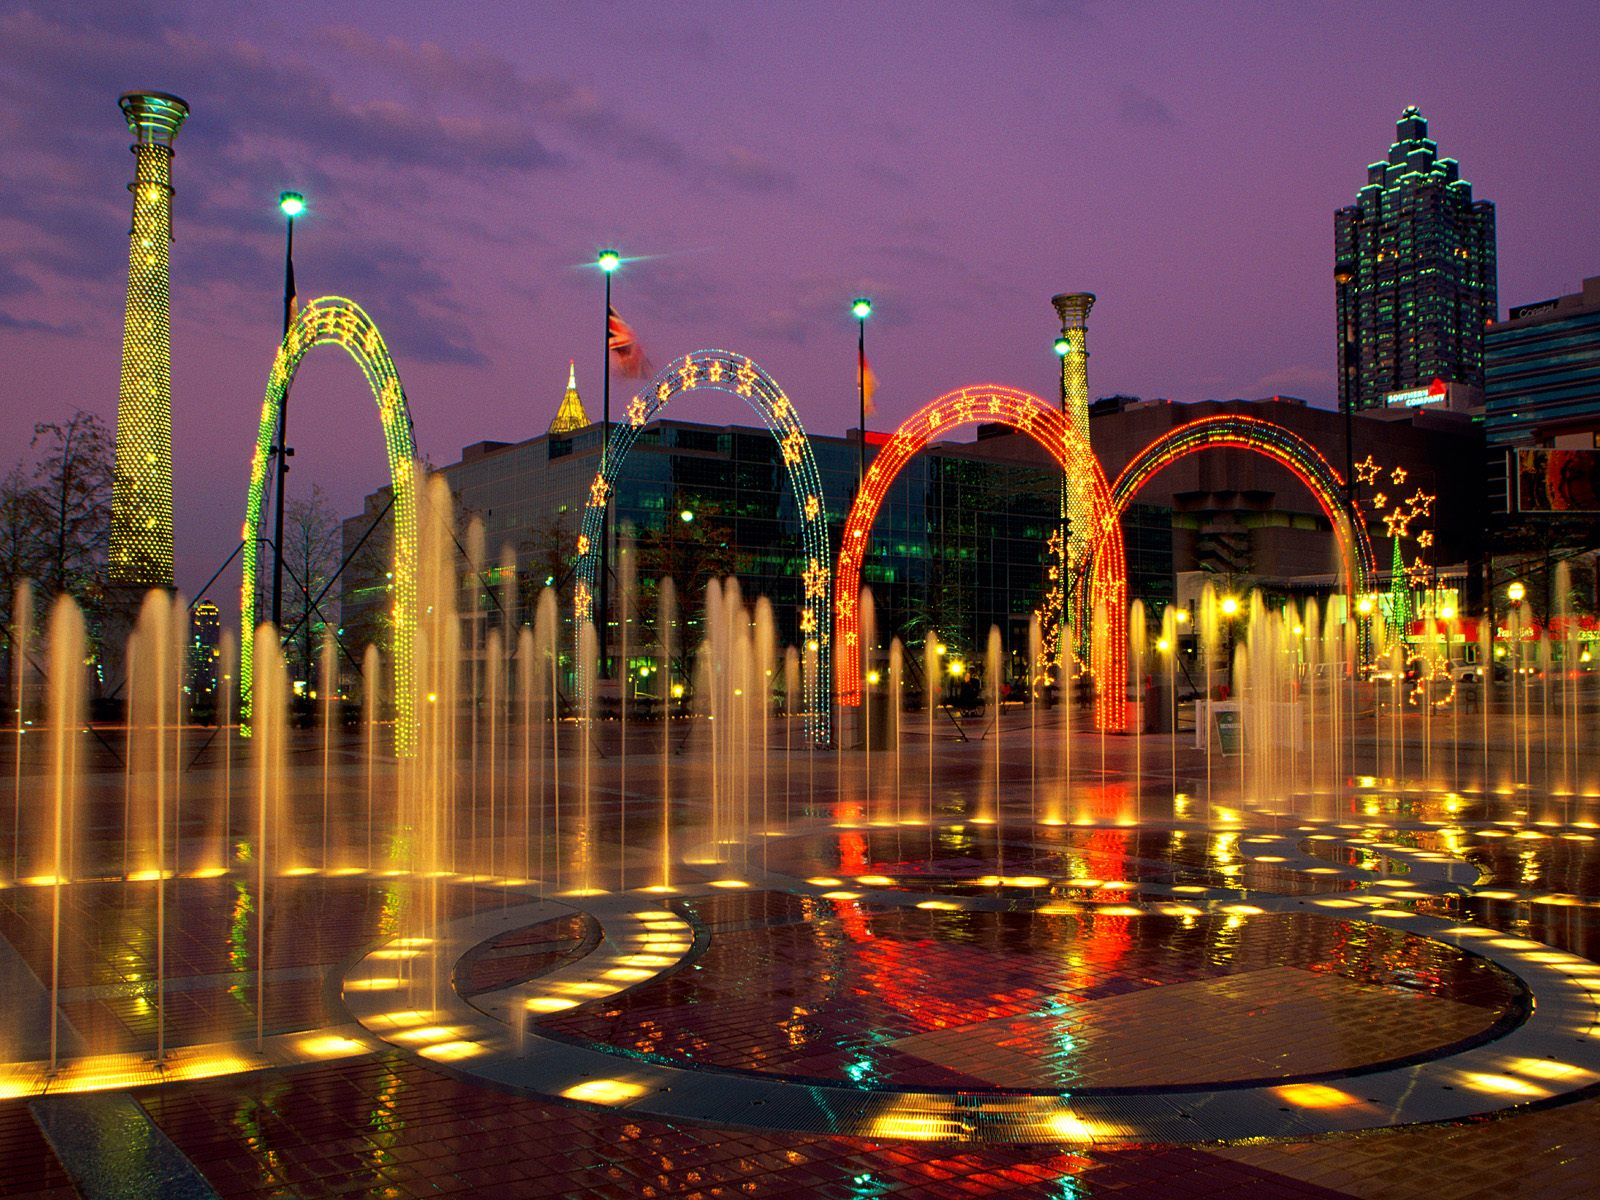 Fun things to do in Atlanta include the colorful fountains